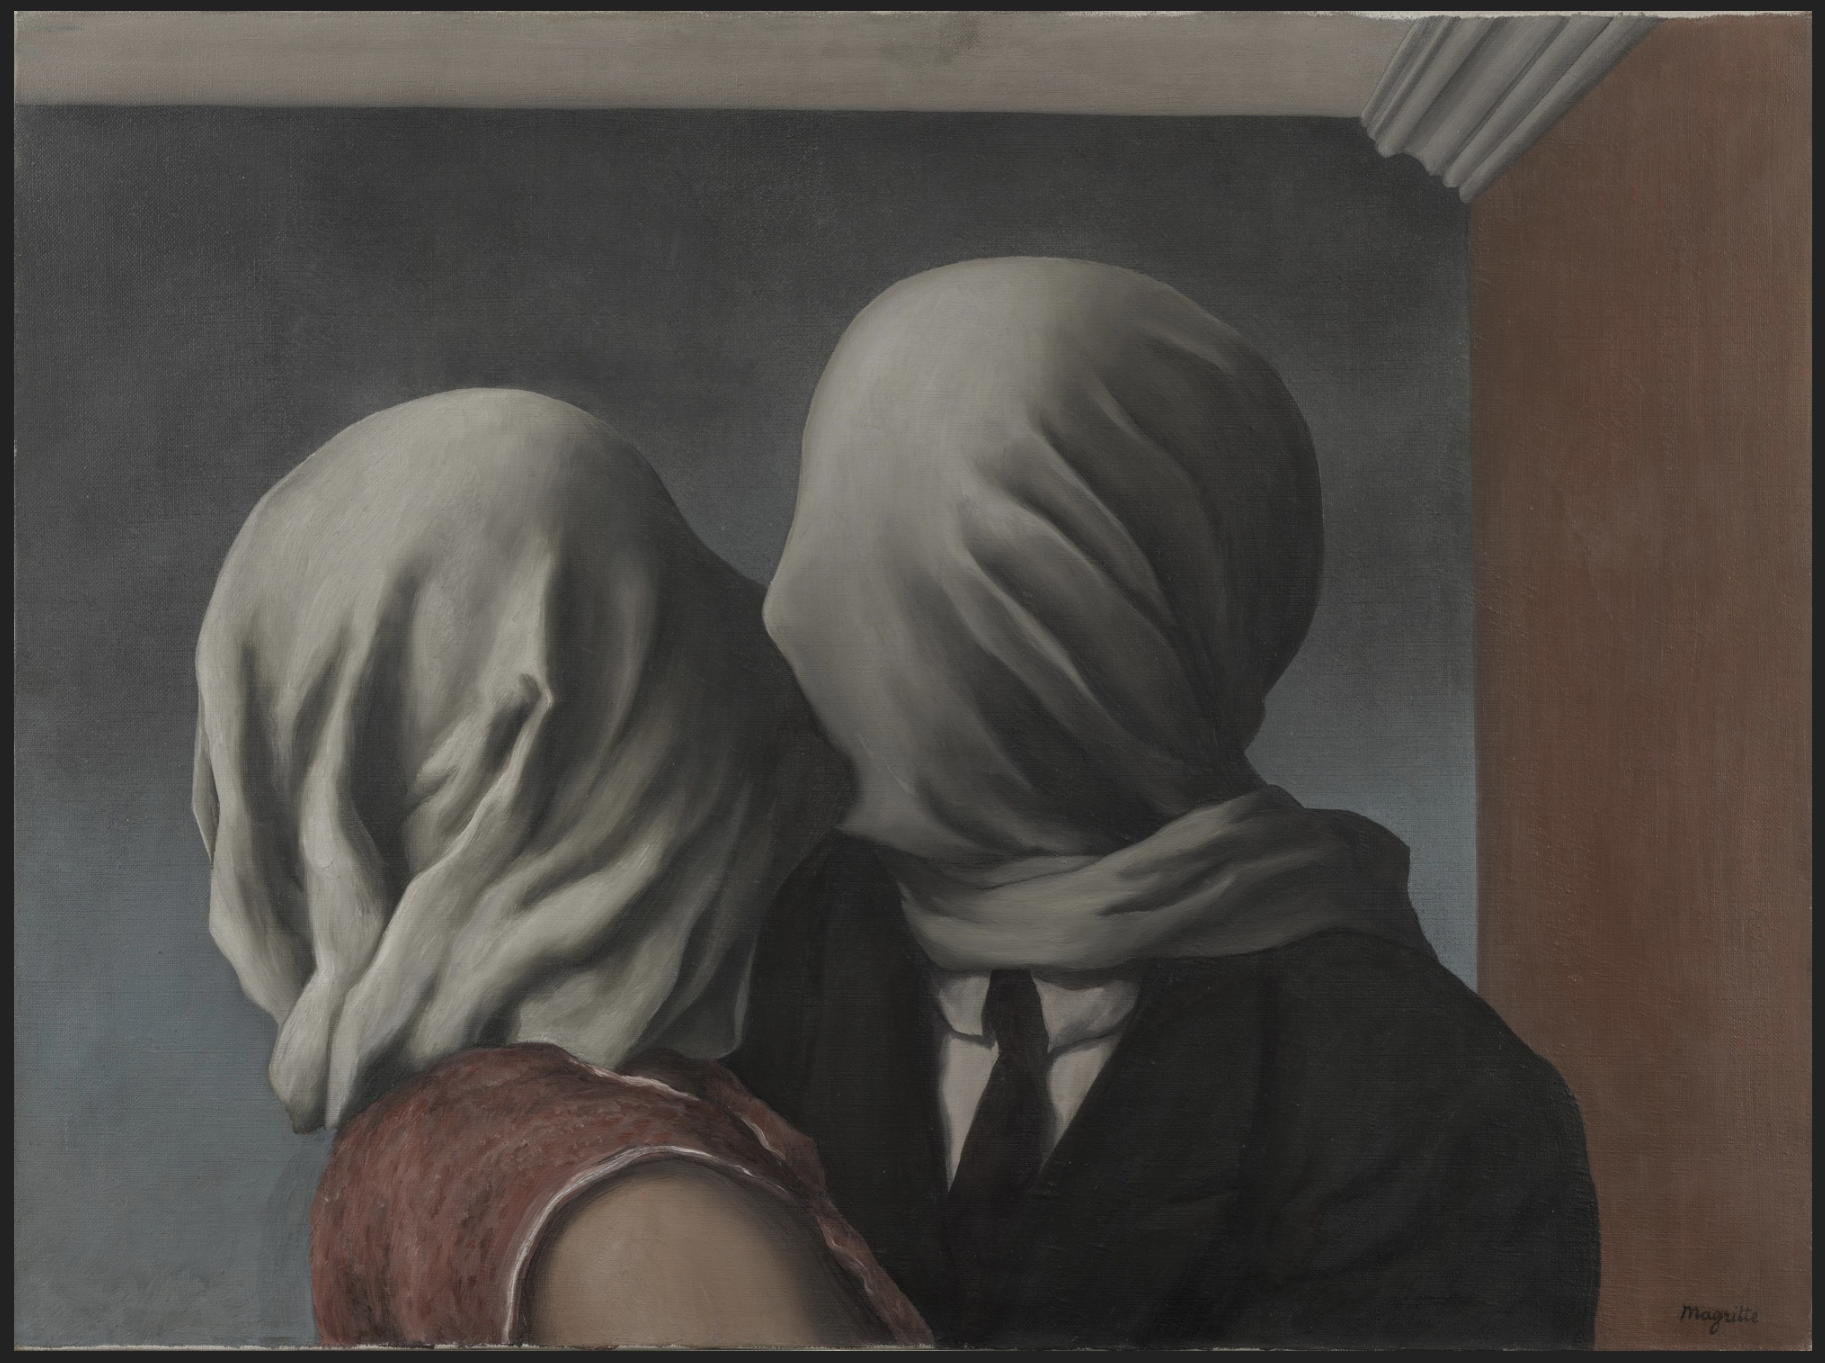 """René Magritte, """"The Lovers"""" (1928)"""